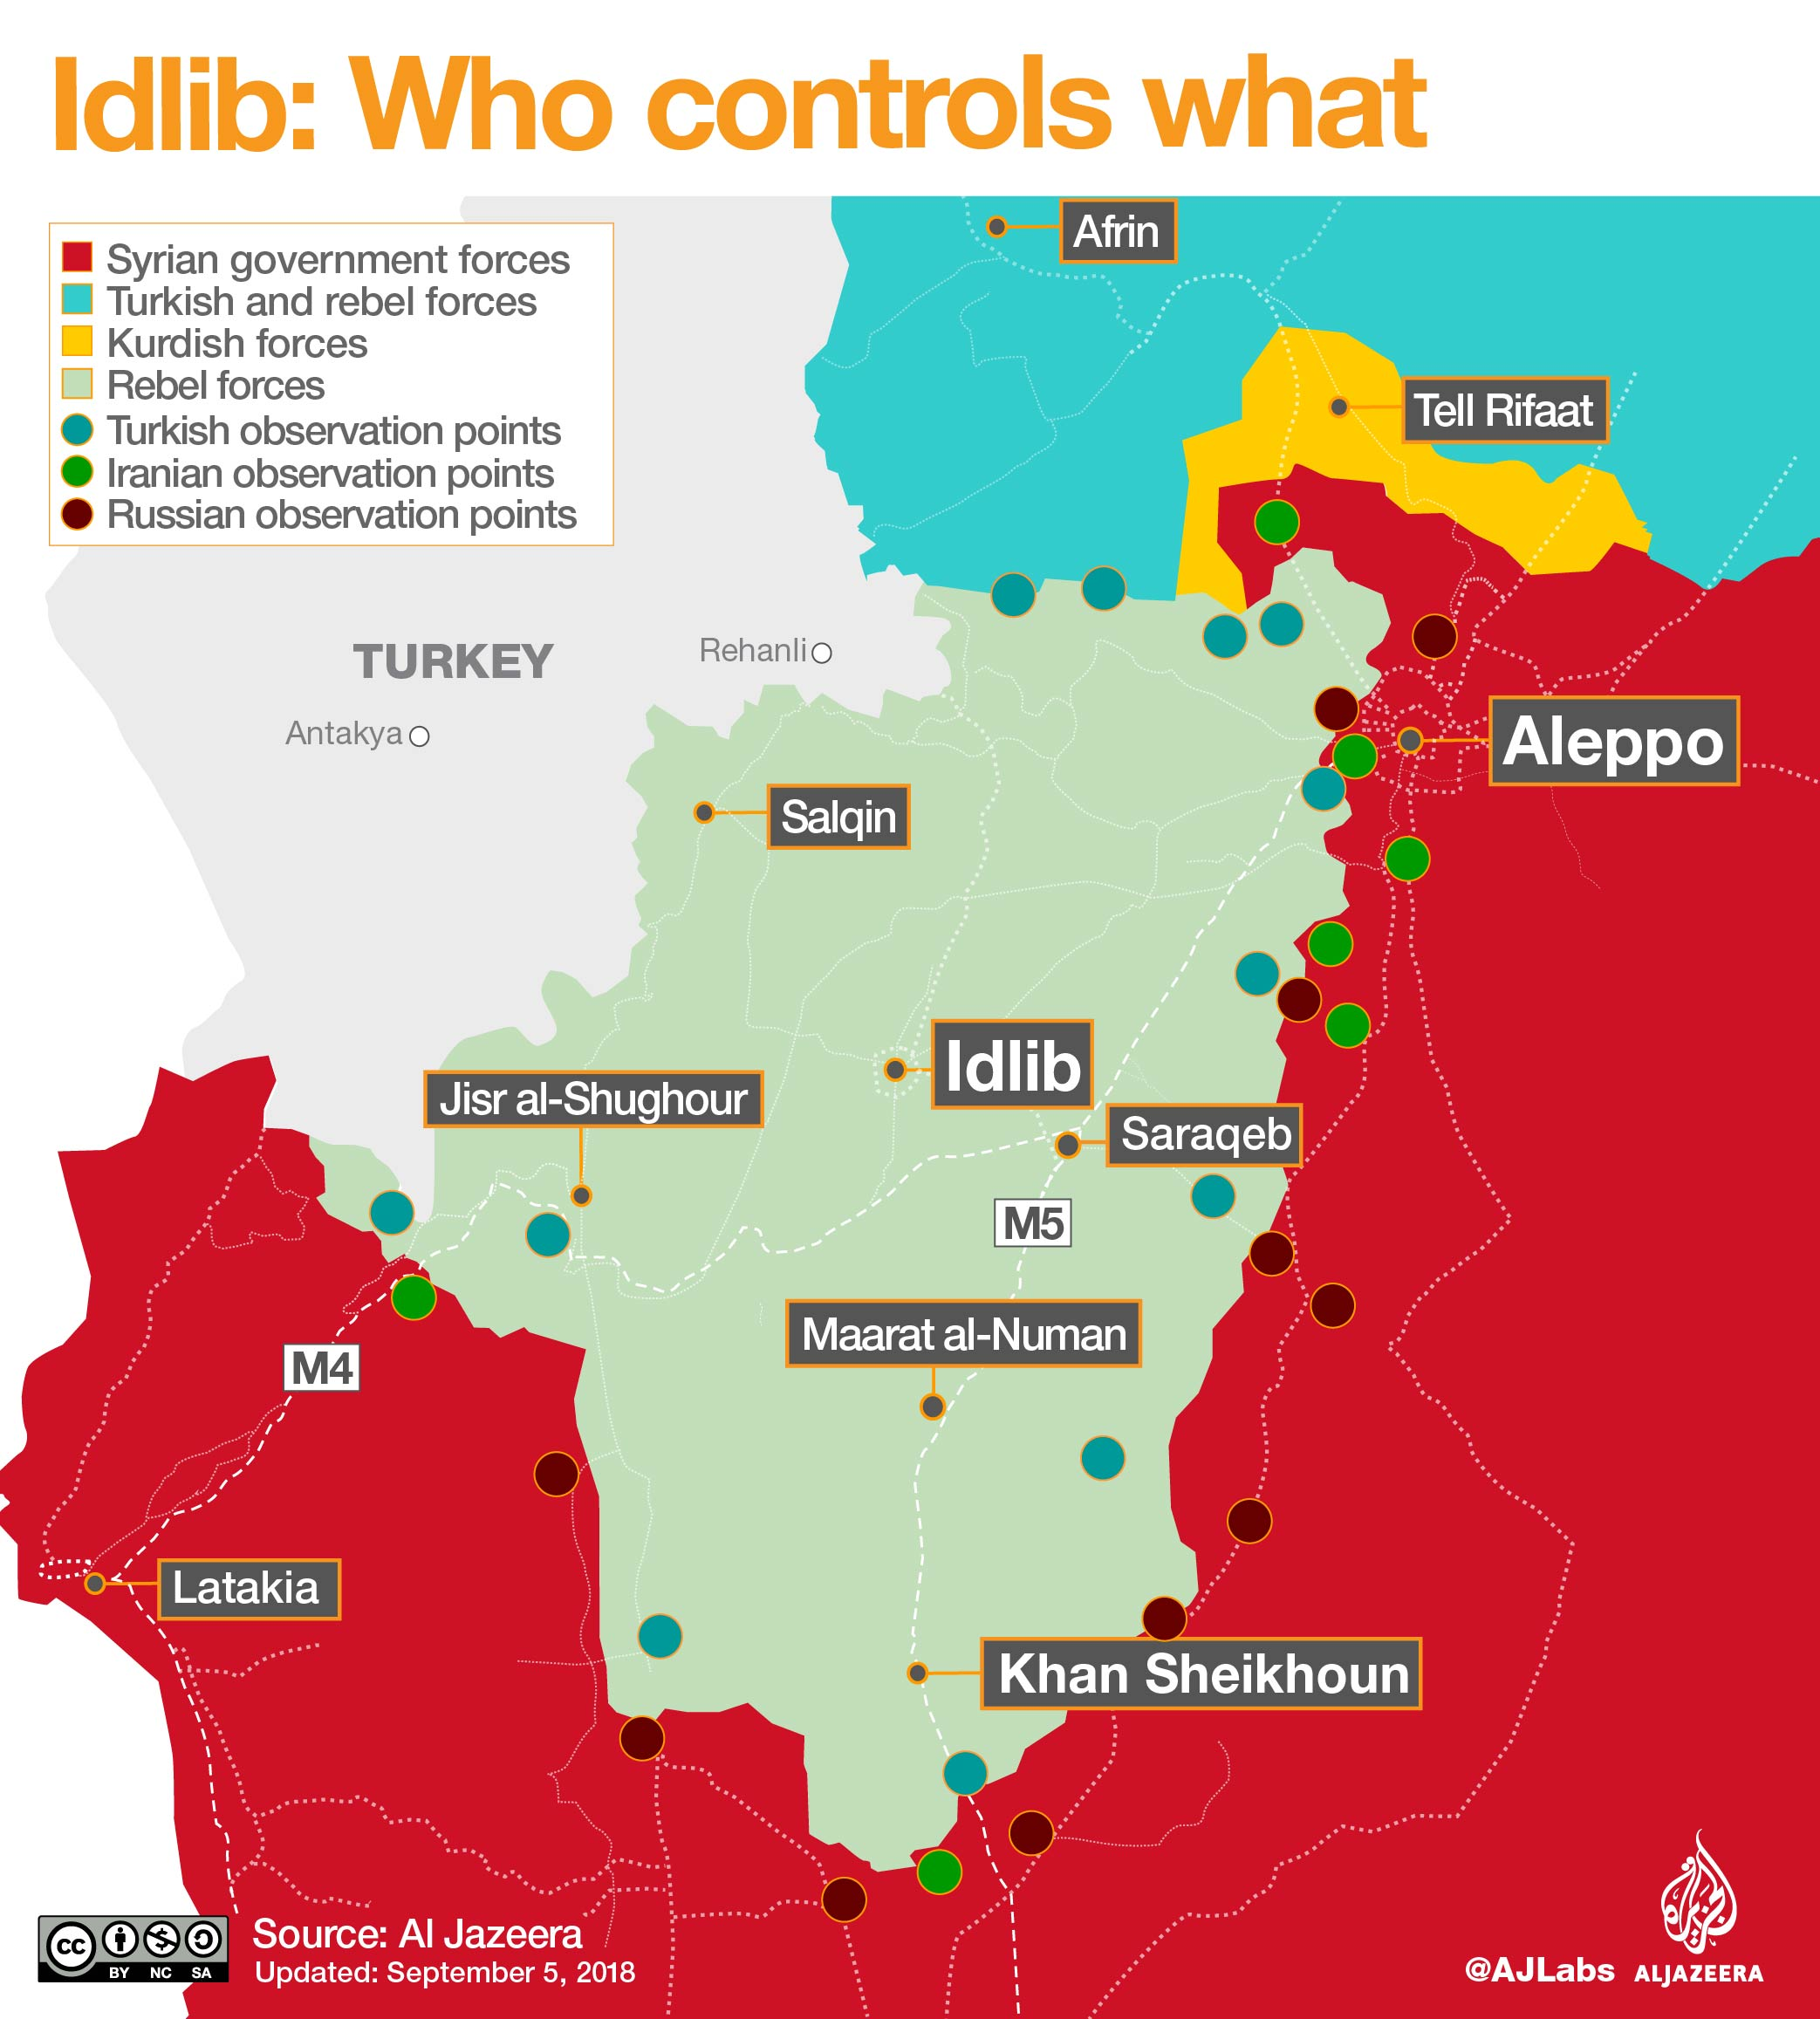 idlib who controls what map infographic